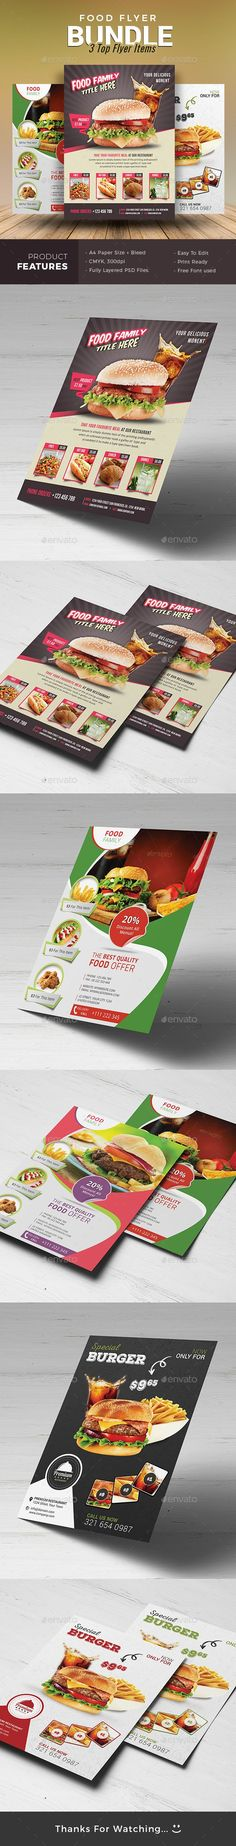 #Restaurant #Flyer Bundle - Restaurant Flyers Download here: https://graphicriver.net/item/restaurant-flyer-bundle/19486557?ref=alena994